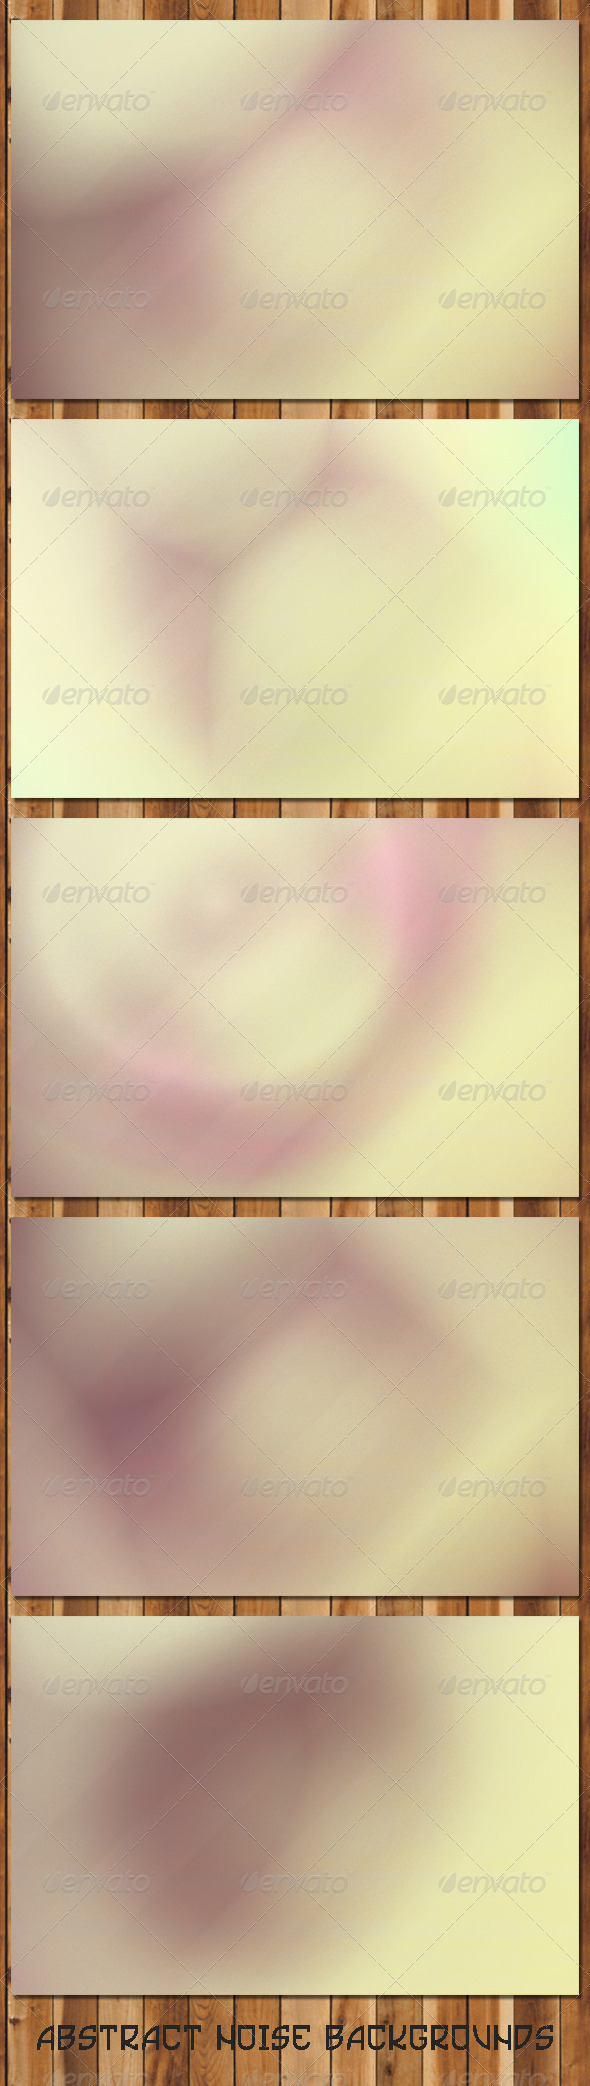 5 Abstract Noise Backgrounds - Abstract Backgrounds